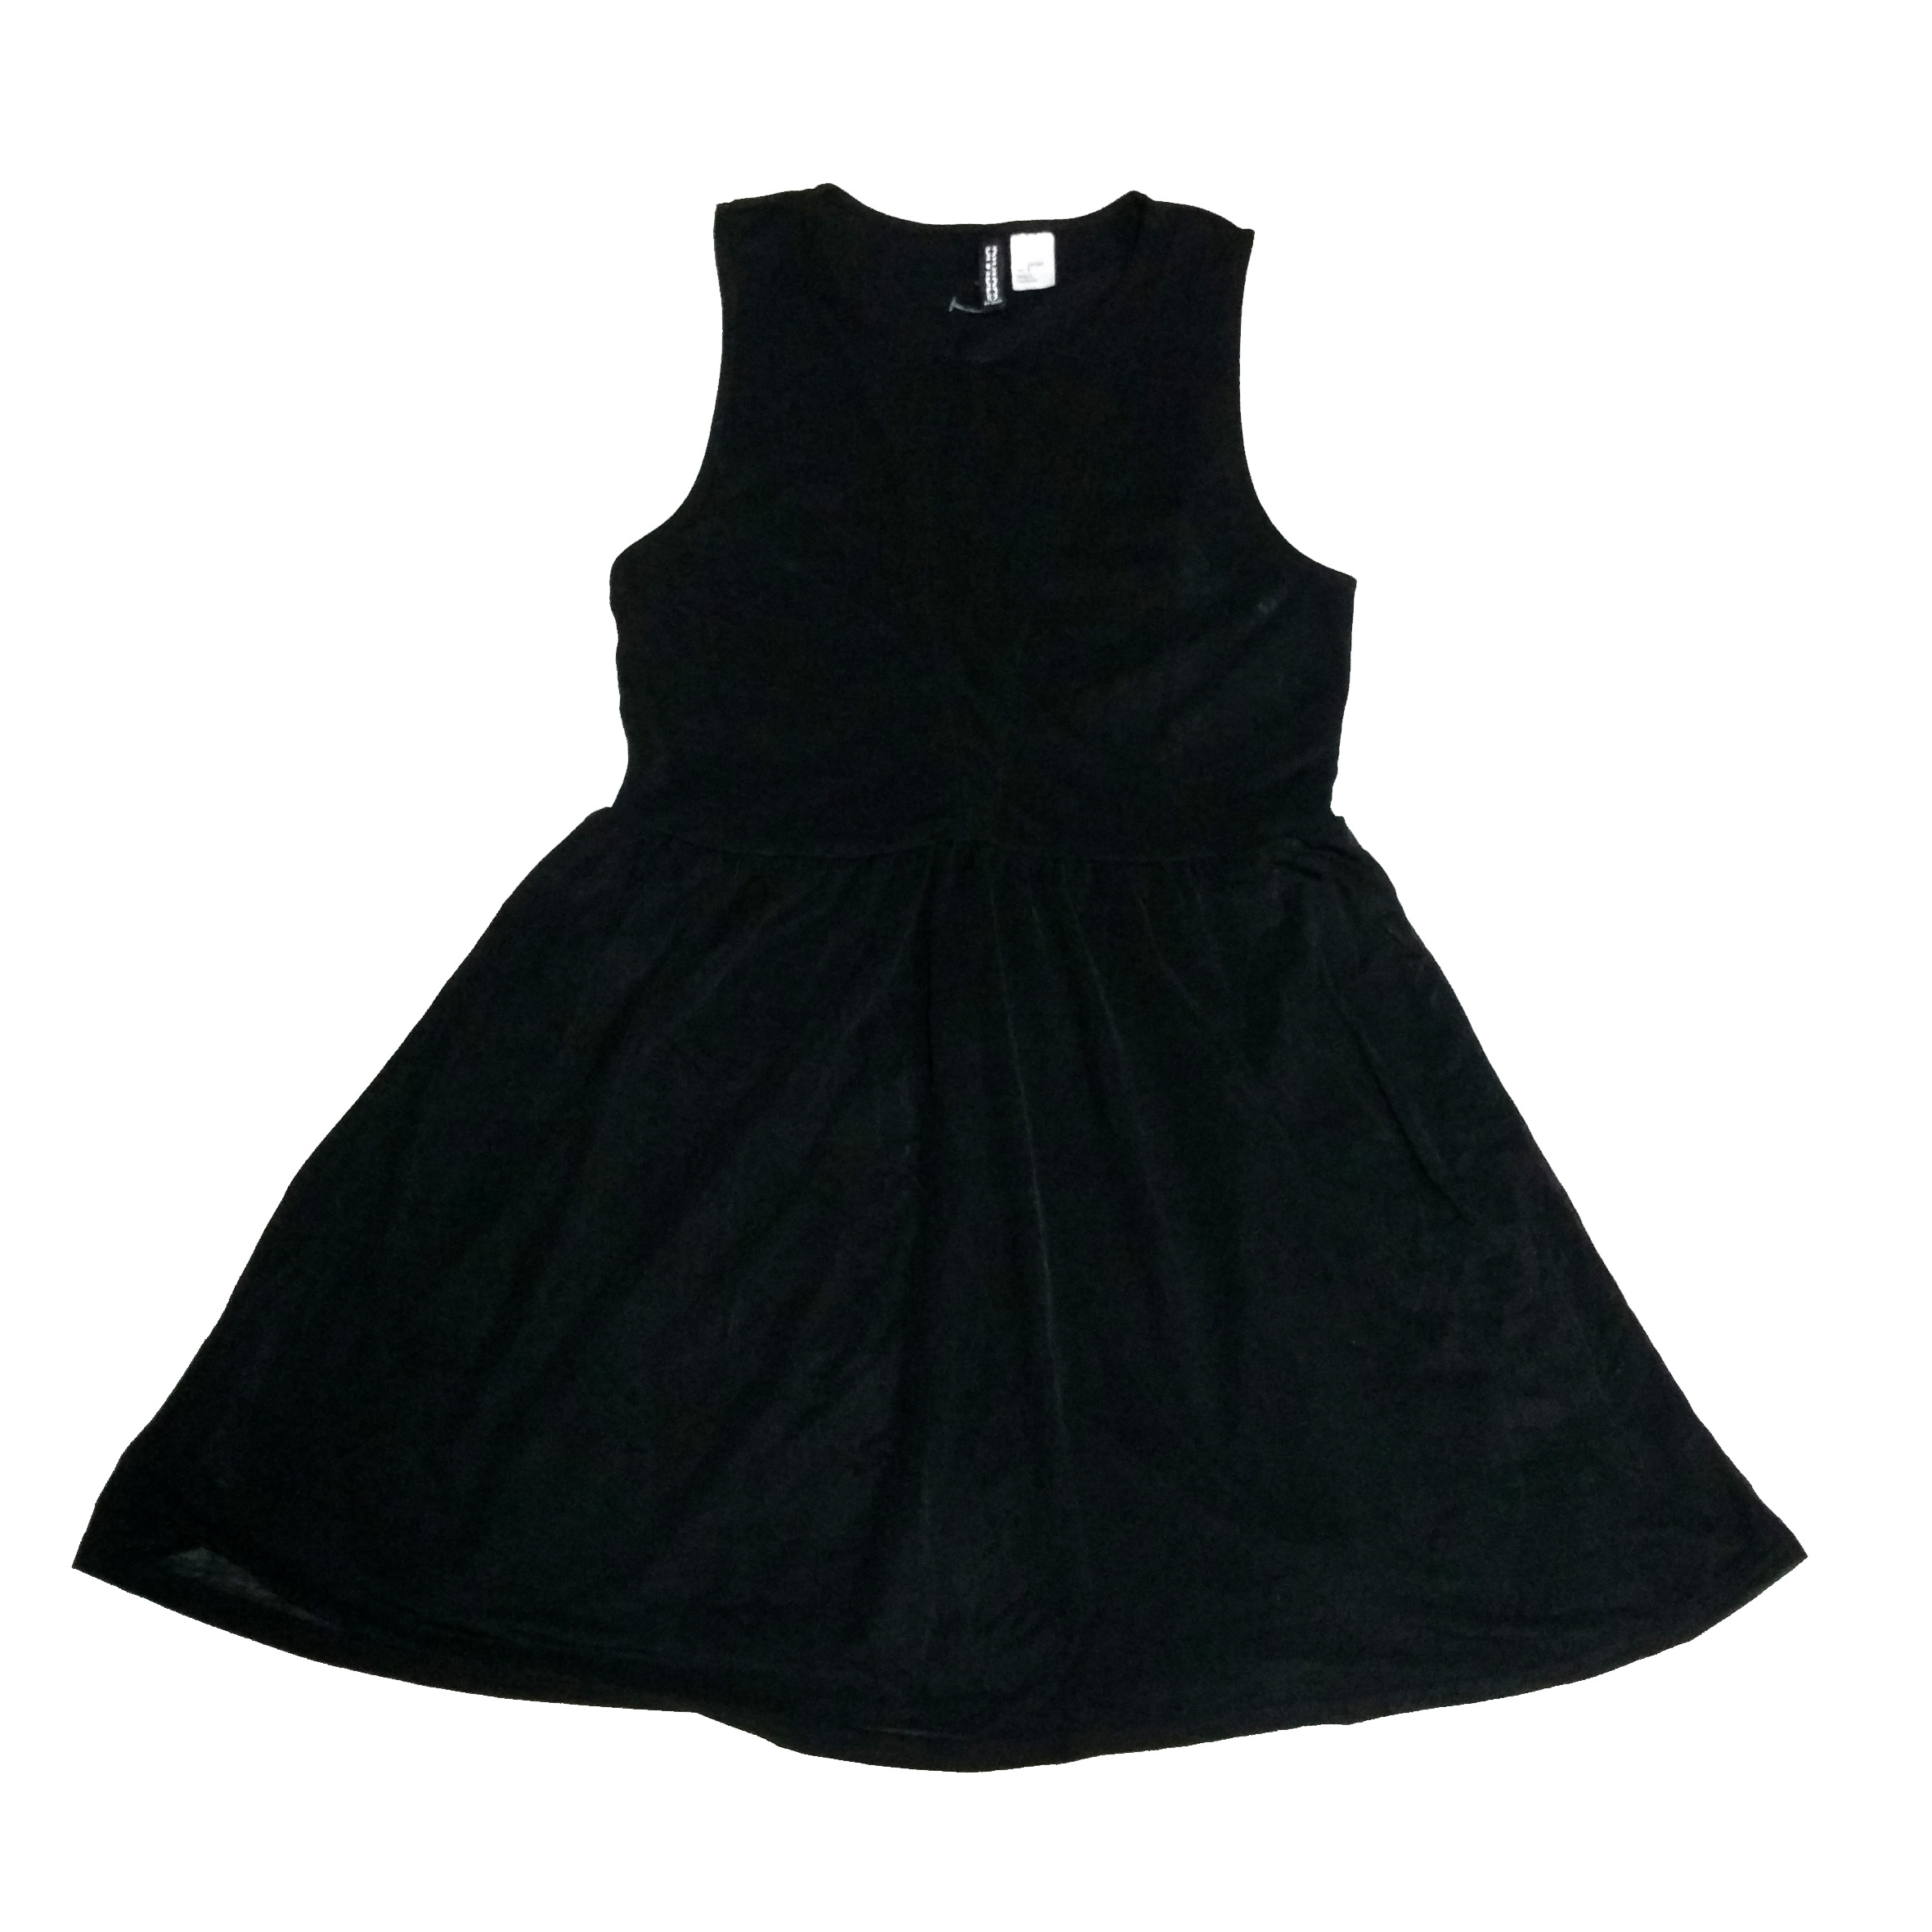 Black Dress Divided - H&M